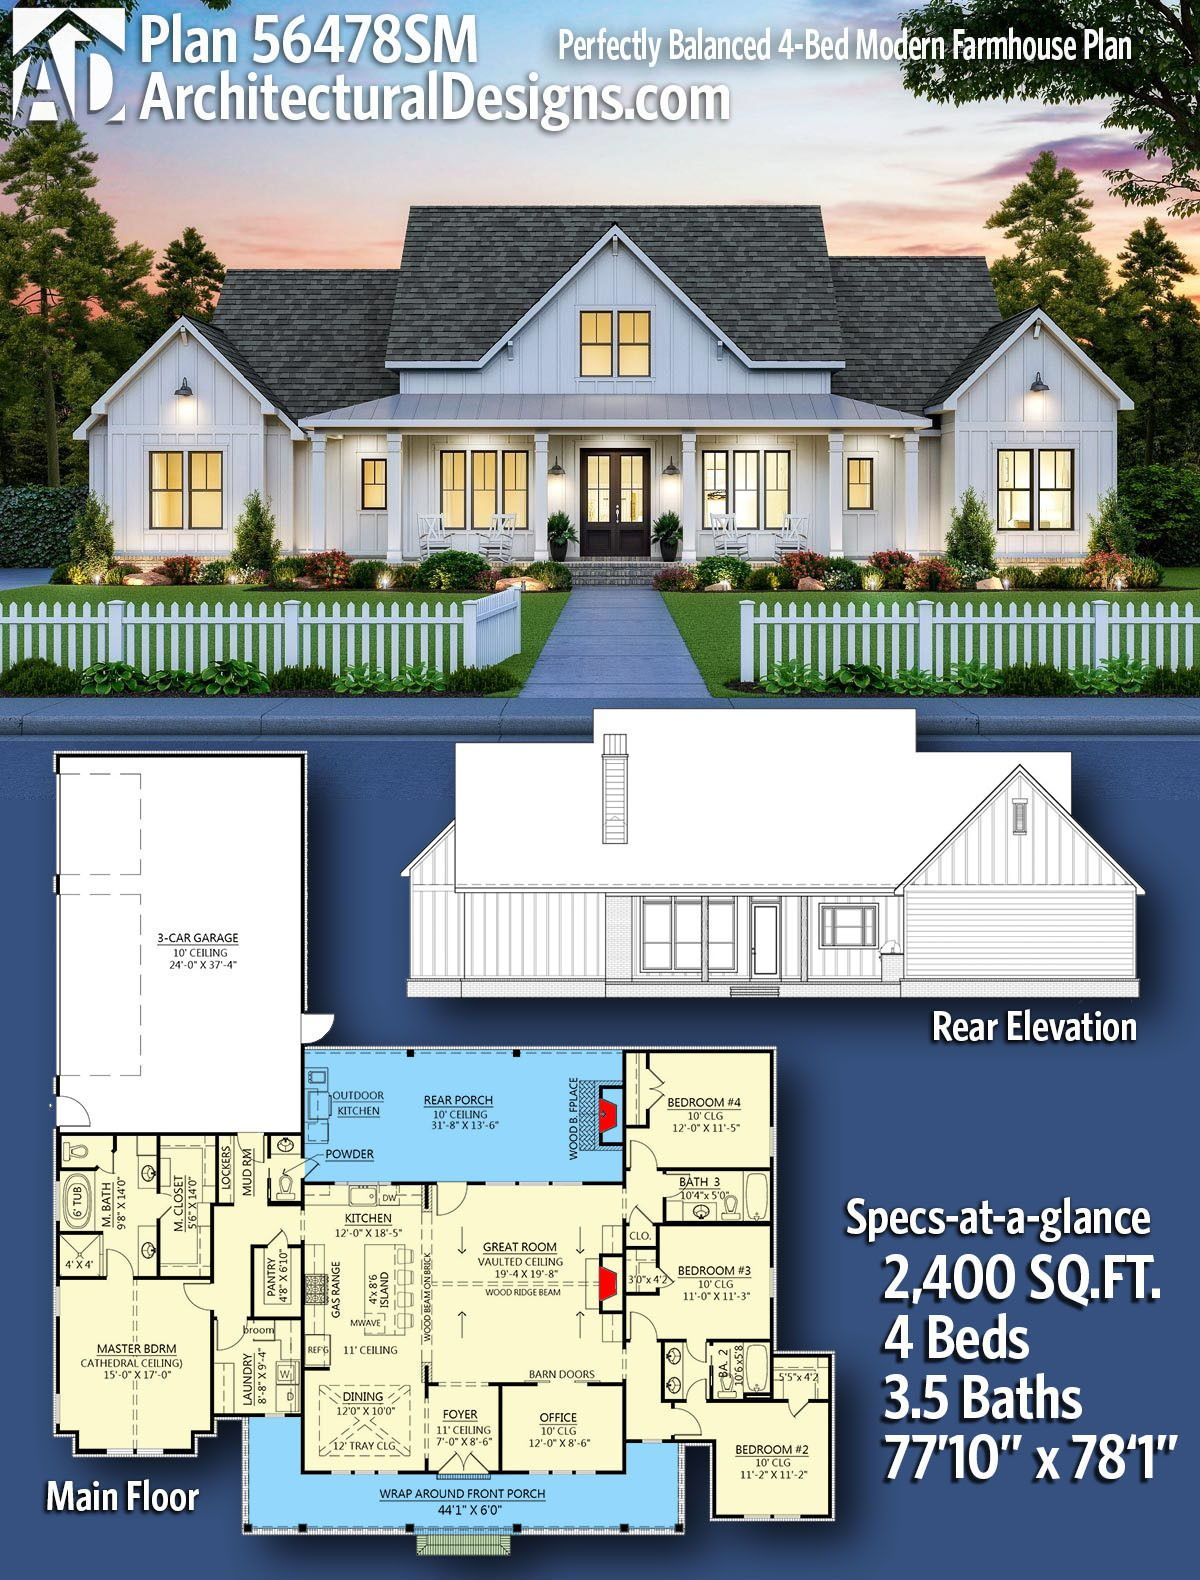 Plan 56478sm Perfectly Balanced 4 Bed Modern Farmhouse Plan Modern Farmhouse Plans Farmhouse Floor Plans House Plans Farmhouse